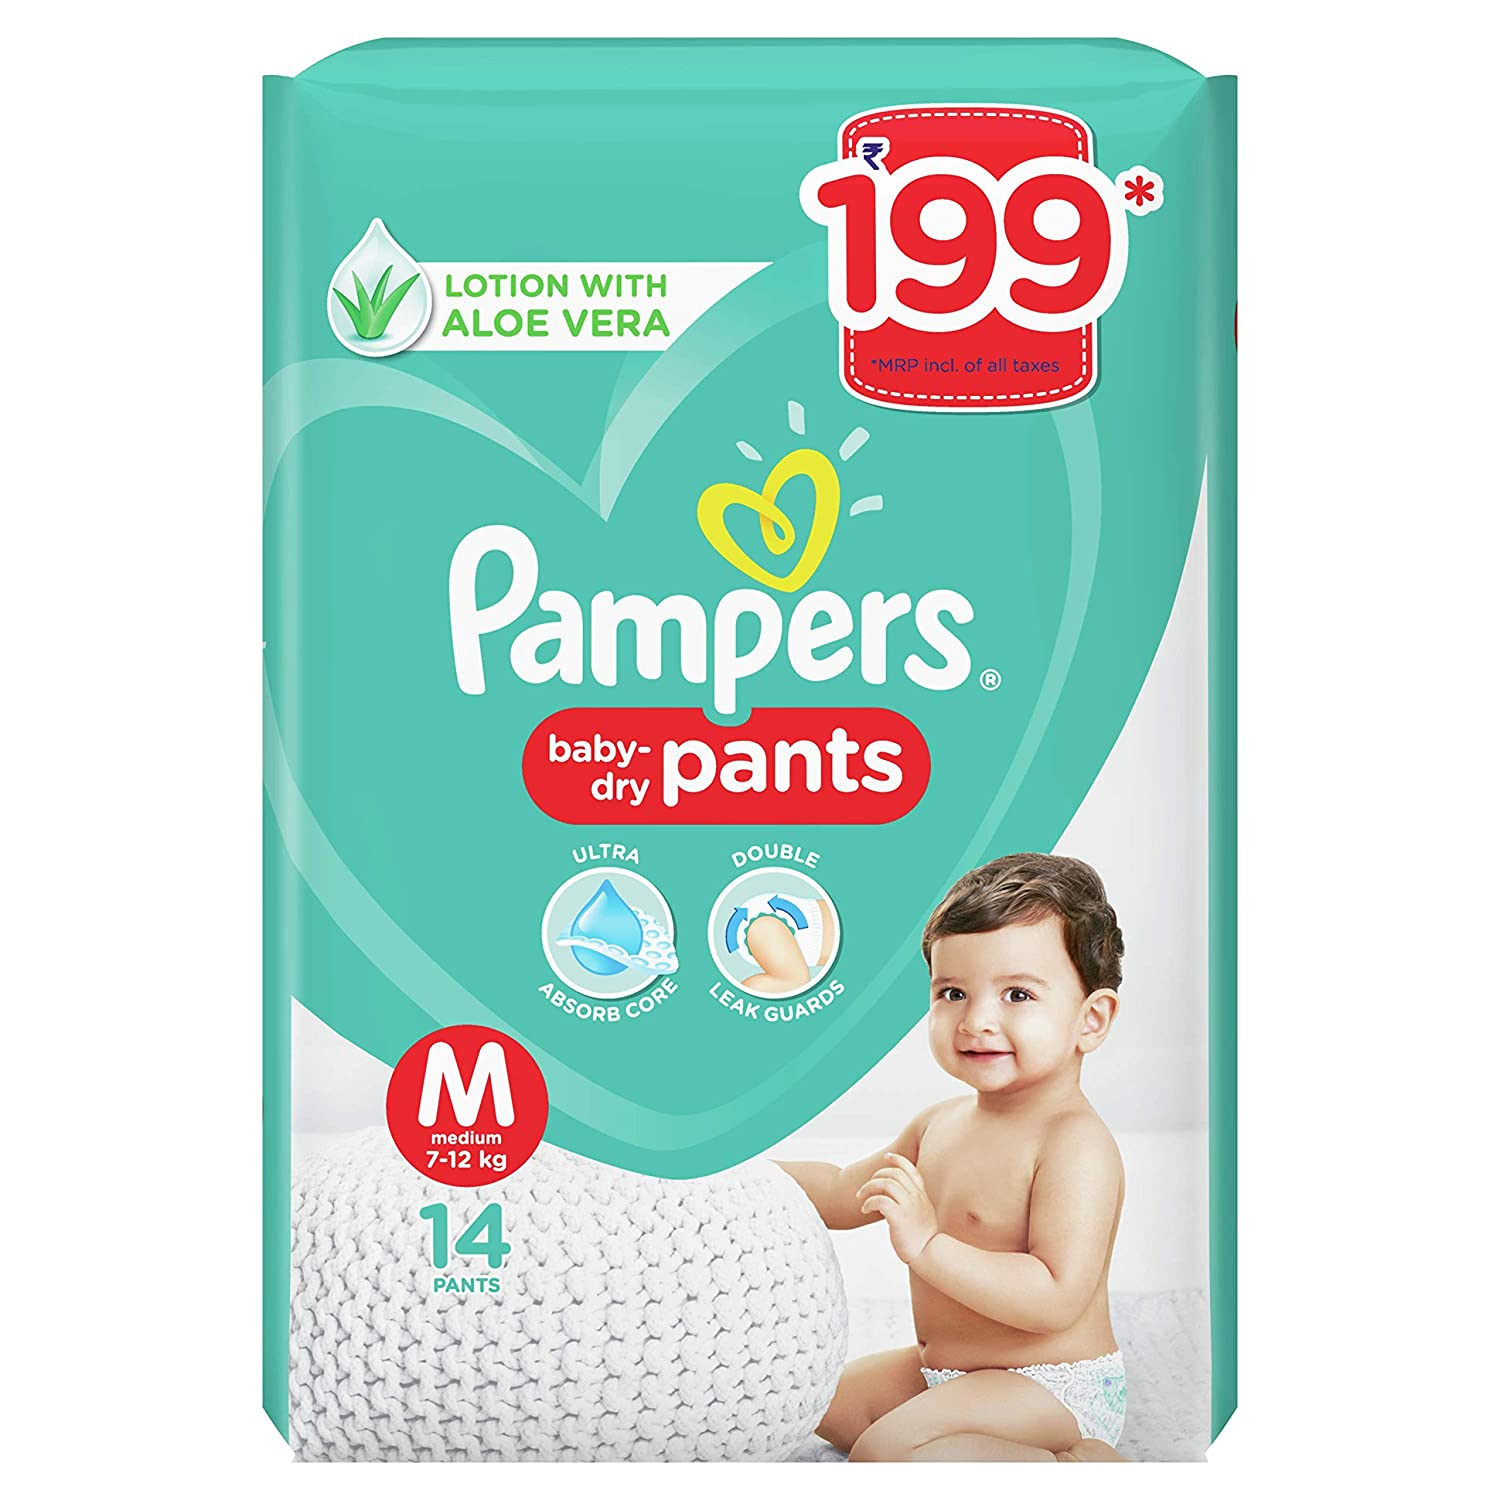 Pampers All round Protection Pants, Medium size baby diapers